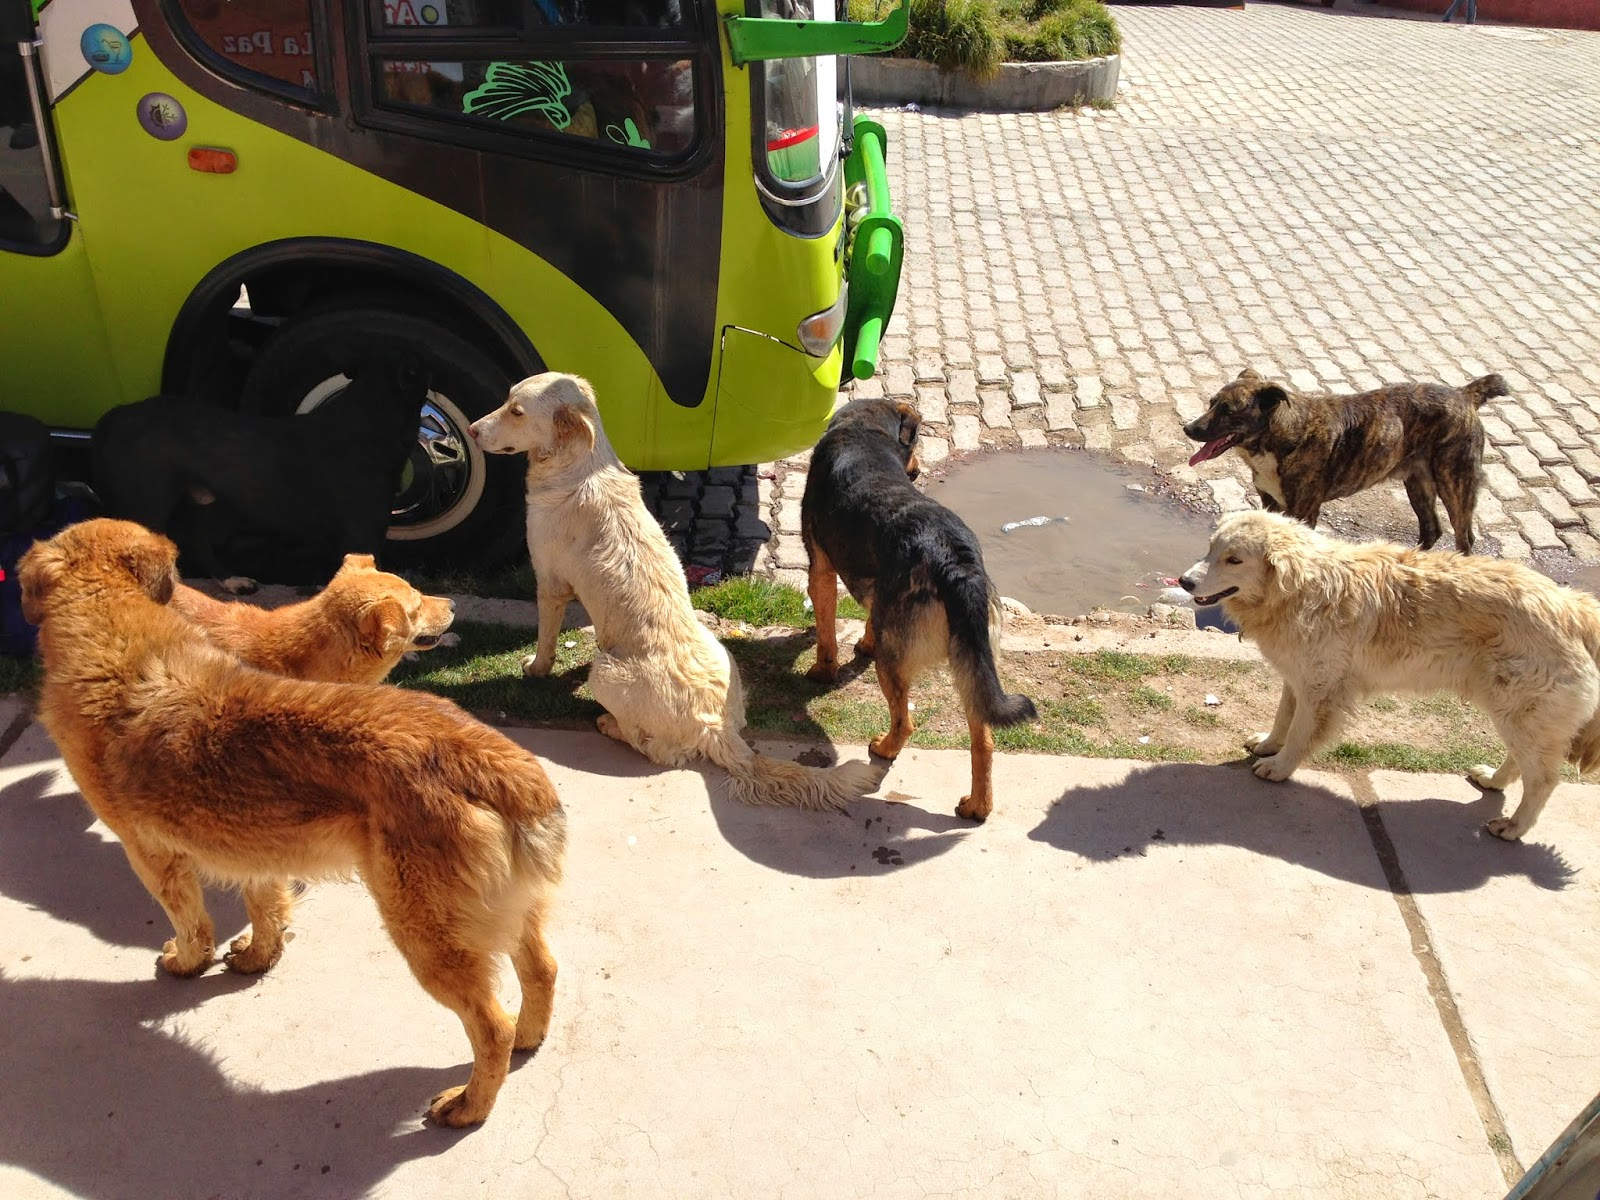 A pack of stray dogs kept us entertained while we waited for the bus we weren't sure was ever going to show up.